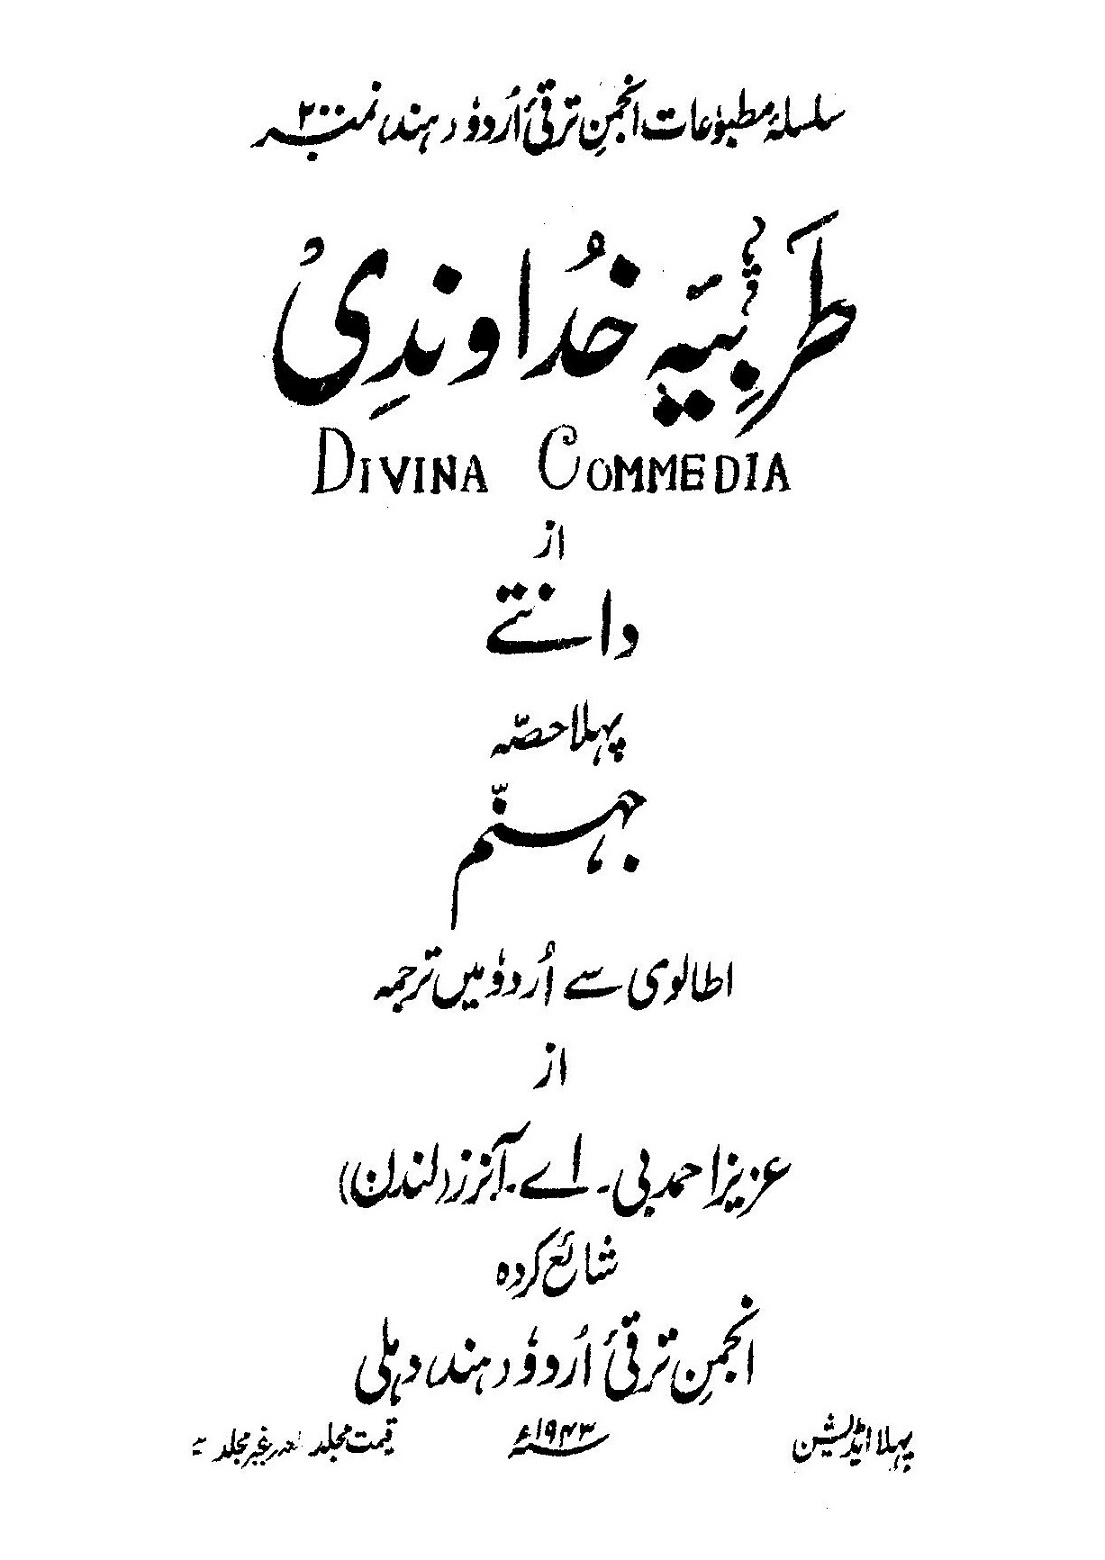 Tarbiya E Khudawandi (Divina Commedia) Part 1 By Dante Alighieri, Translated By Aziz Ahmed